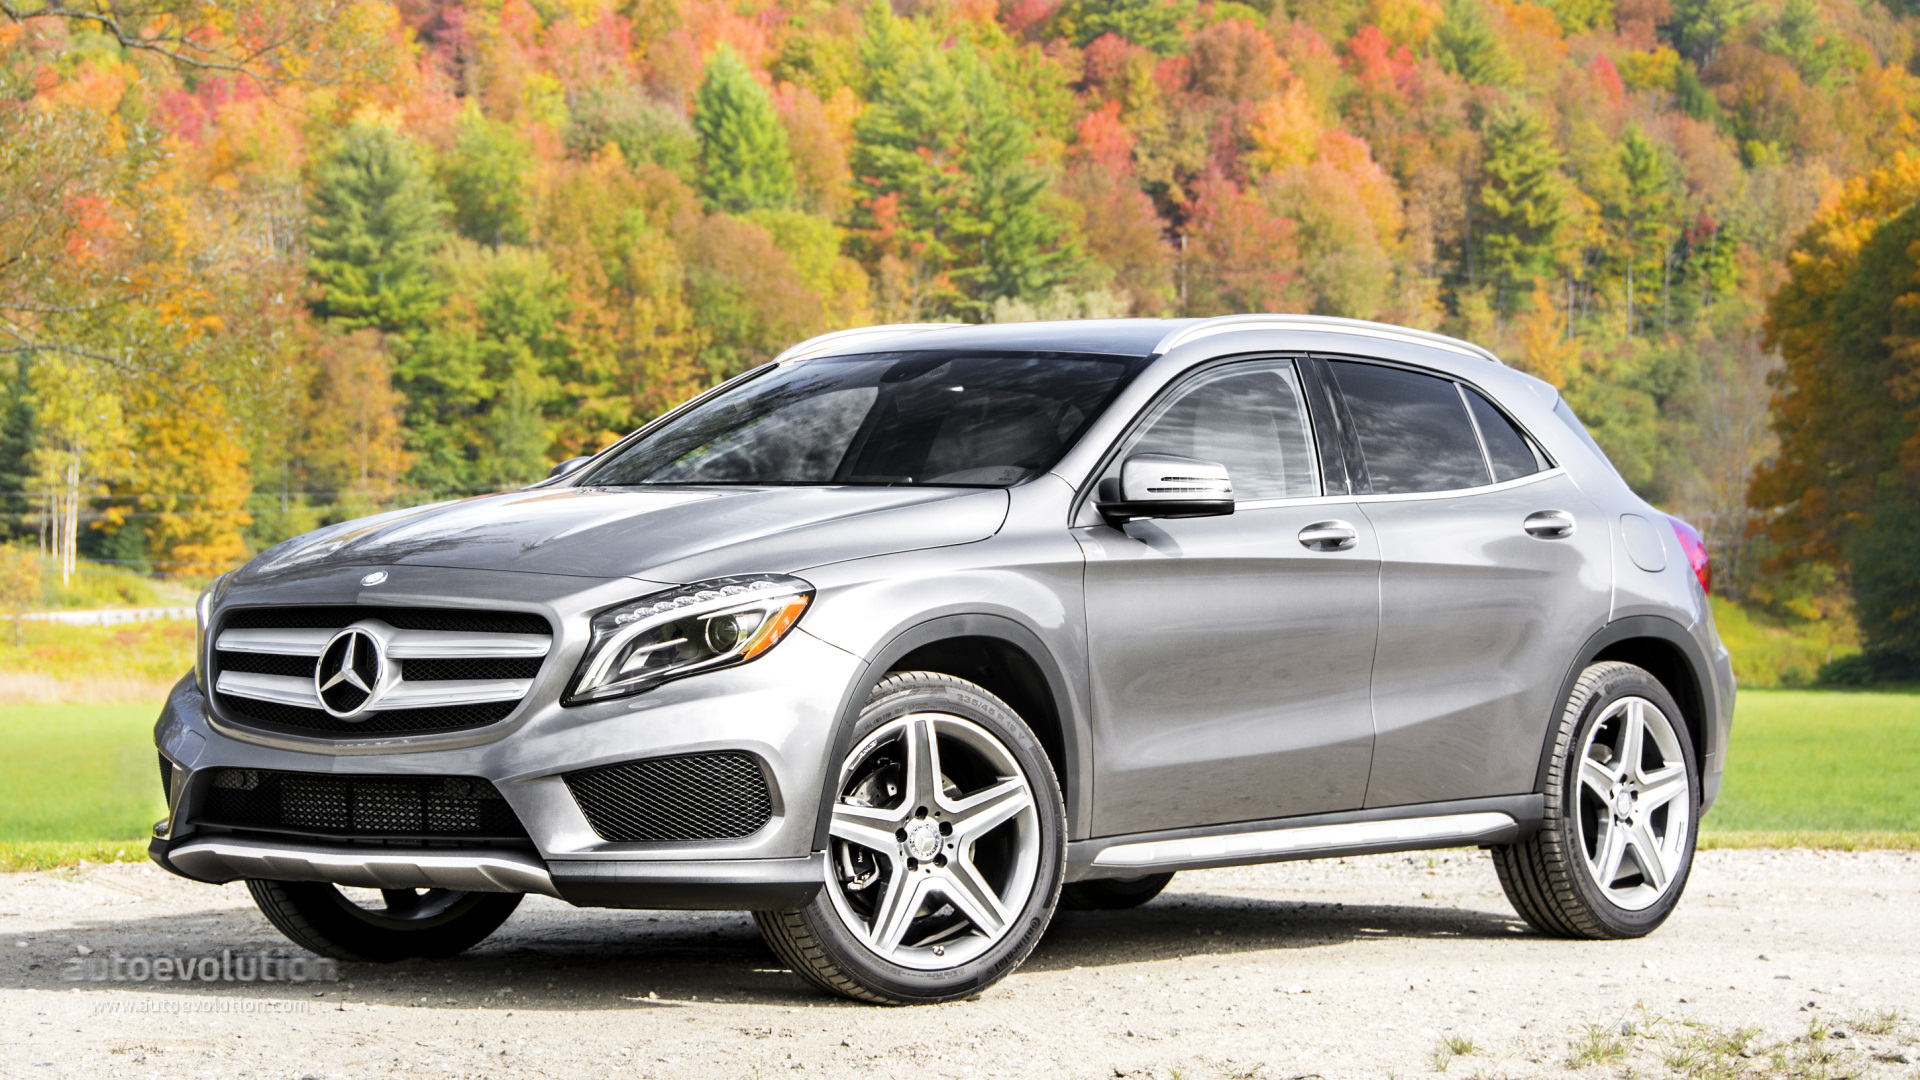 2015 mercedes benz gla250 4matic gla45 amg review autoevolution. Black Bedroom Furniture Sets. Home Design Ideas